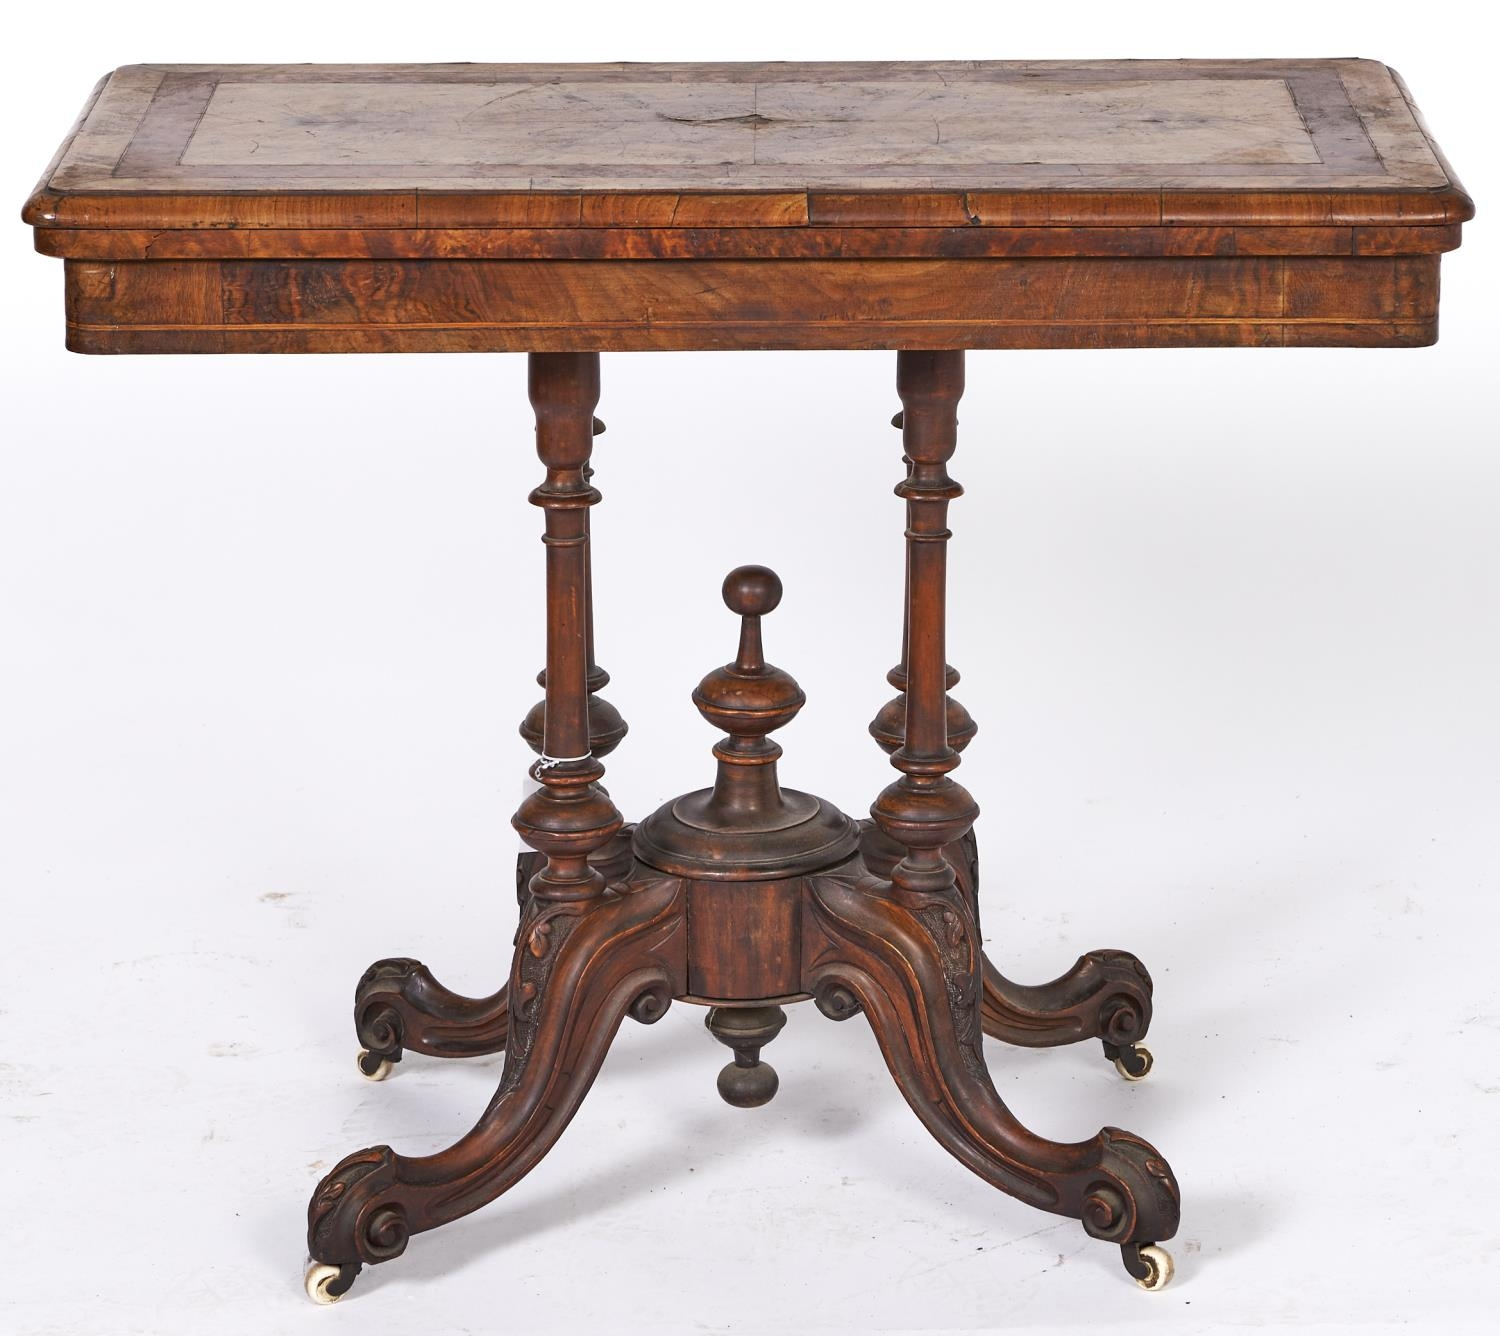 A Victorian inlaid walnut folding card table, with quarter veneered top, turned and carved